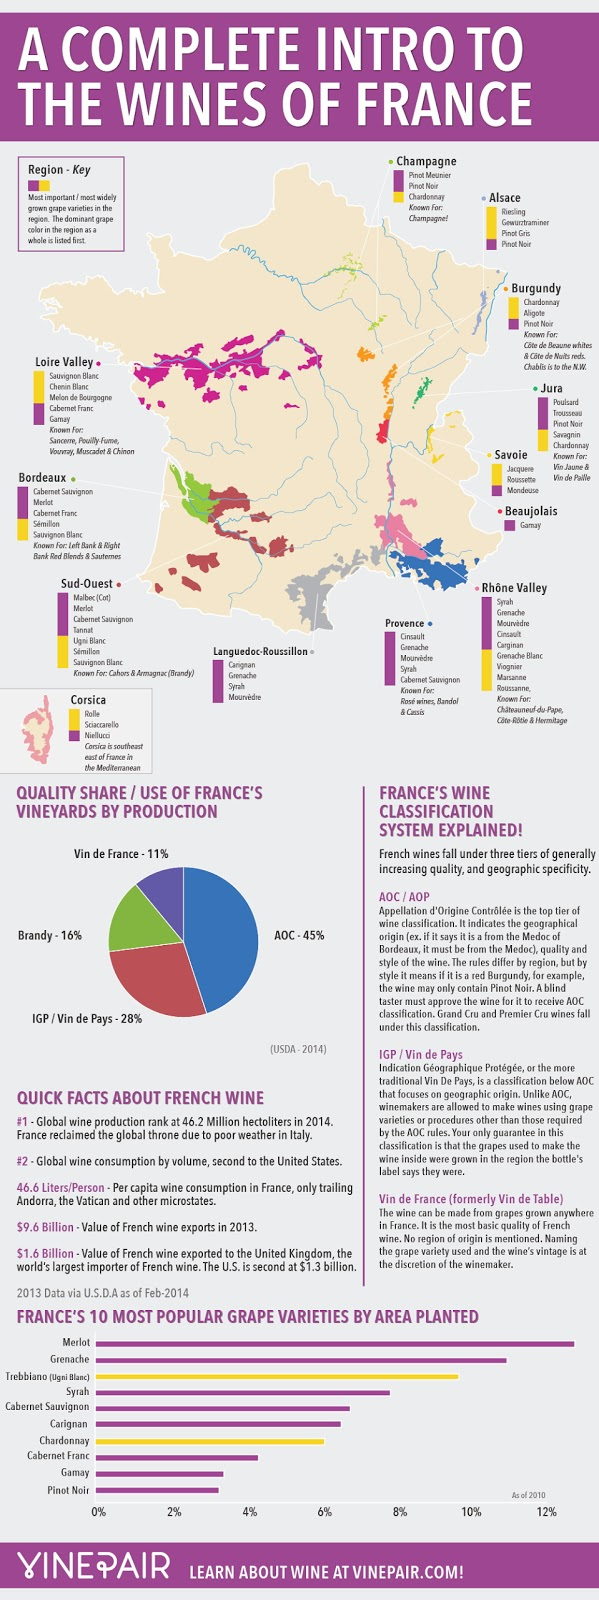 A complete intro to the wines of France